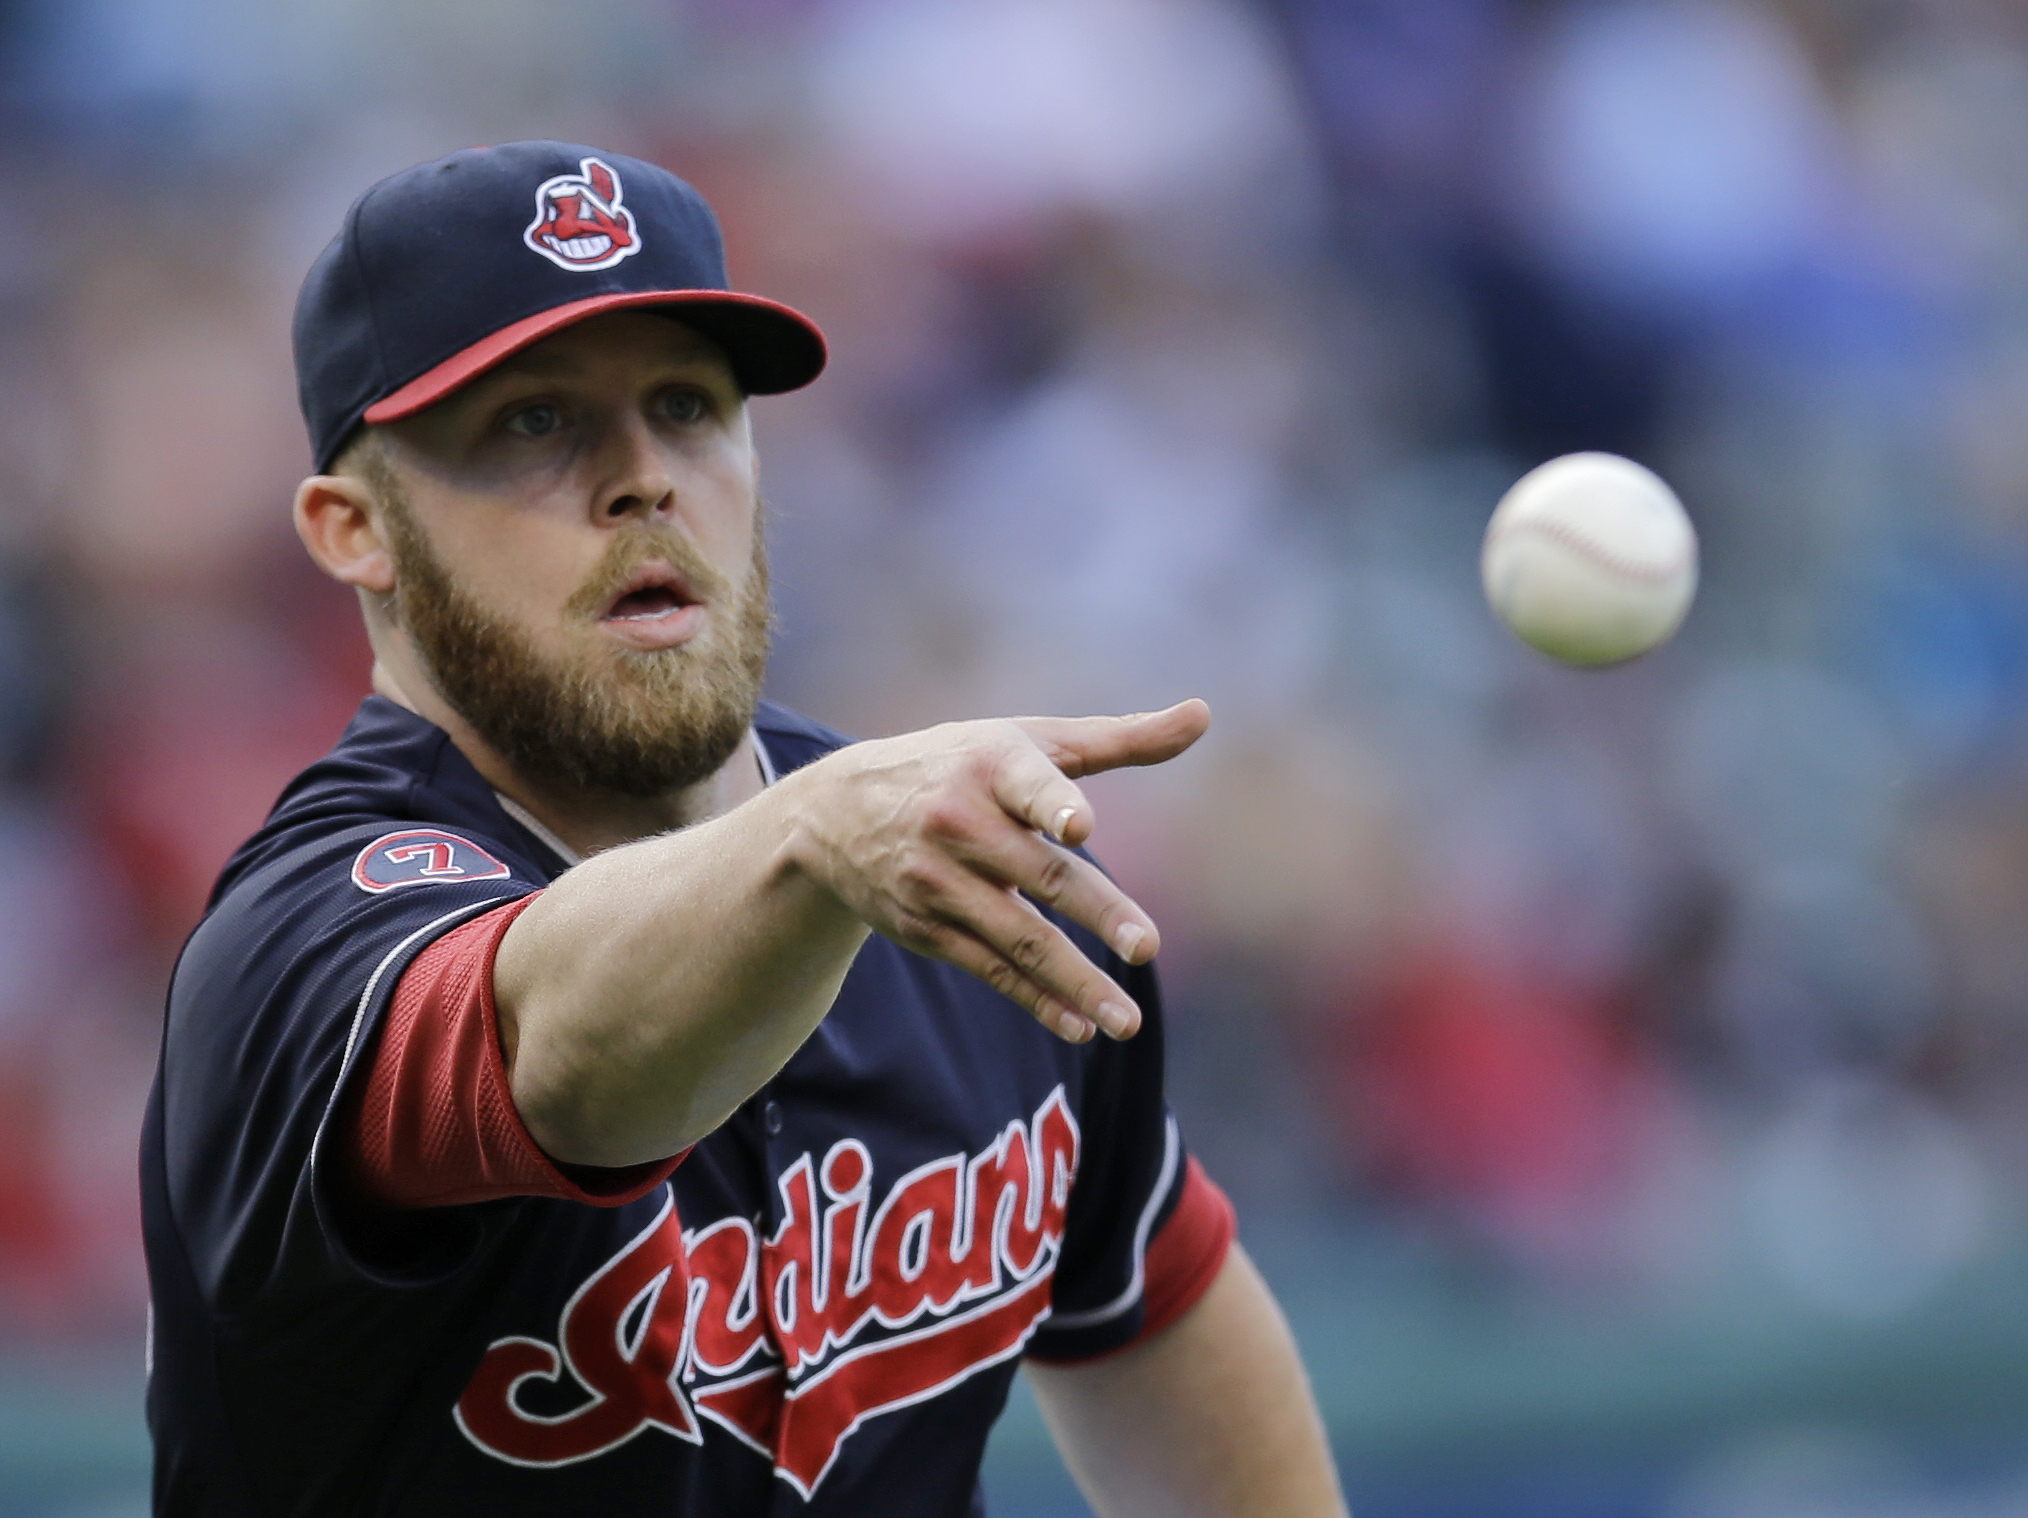 Cleveland Indians relief pitcher Cody Allen tosses the ball to first base to get Detroit Tigers' James McCann out in the ninth inning of the first game of a baseball doubleheader, Sunday, Sept. 13, 2015, in Cleveland. The Indians won 7-2. (AP Photo/Tony D